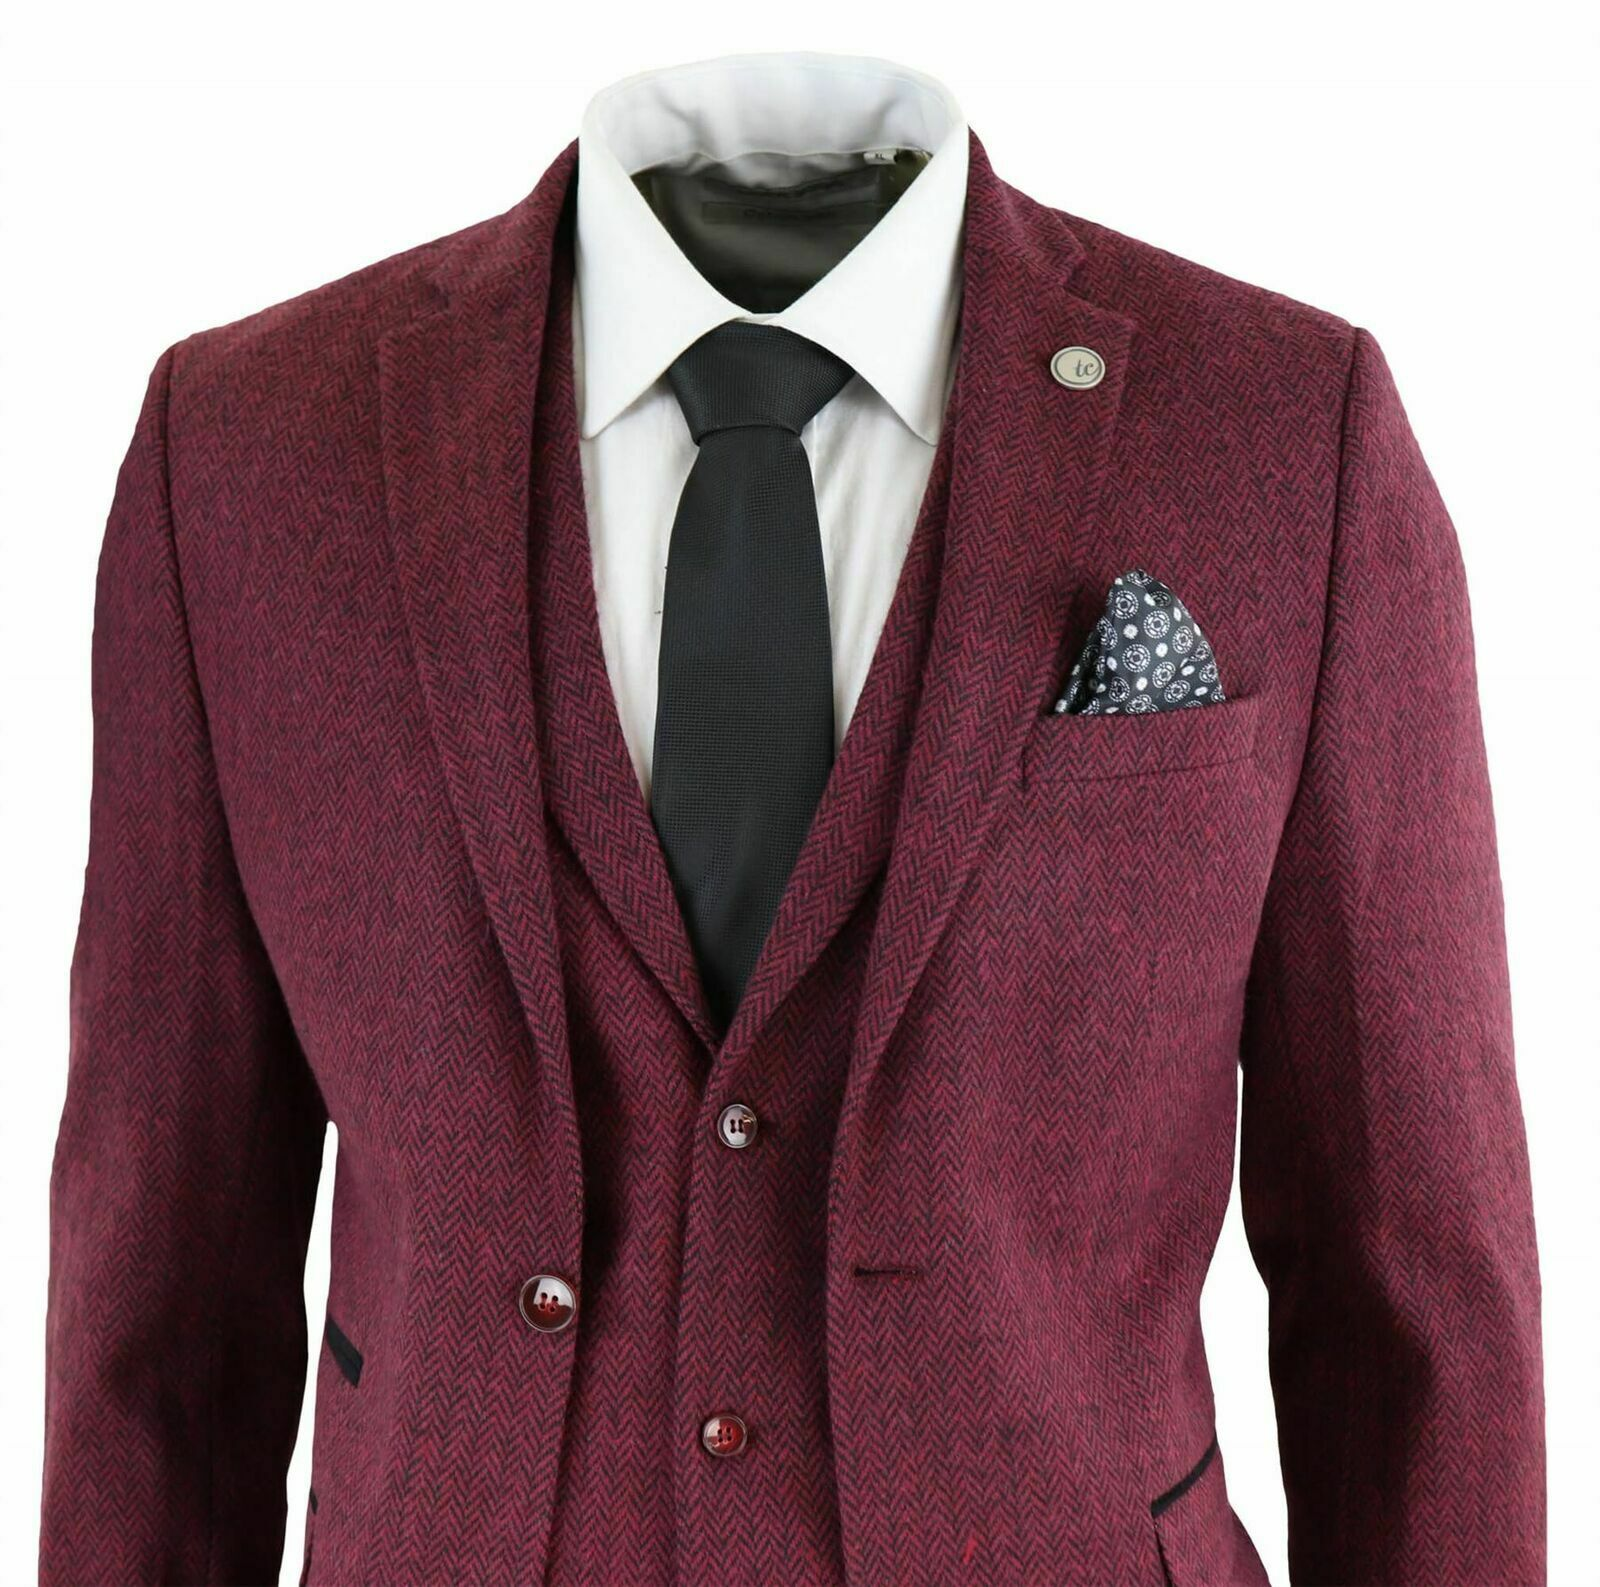 Mens Wool 3 Piece Suit Tweed Burgundy Herringbone Tailored Fit Peaky Blinders